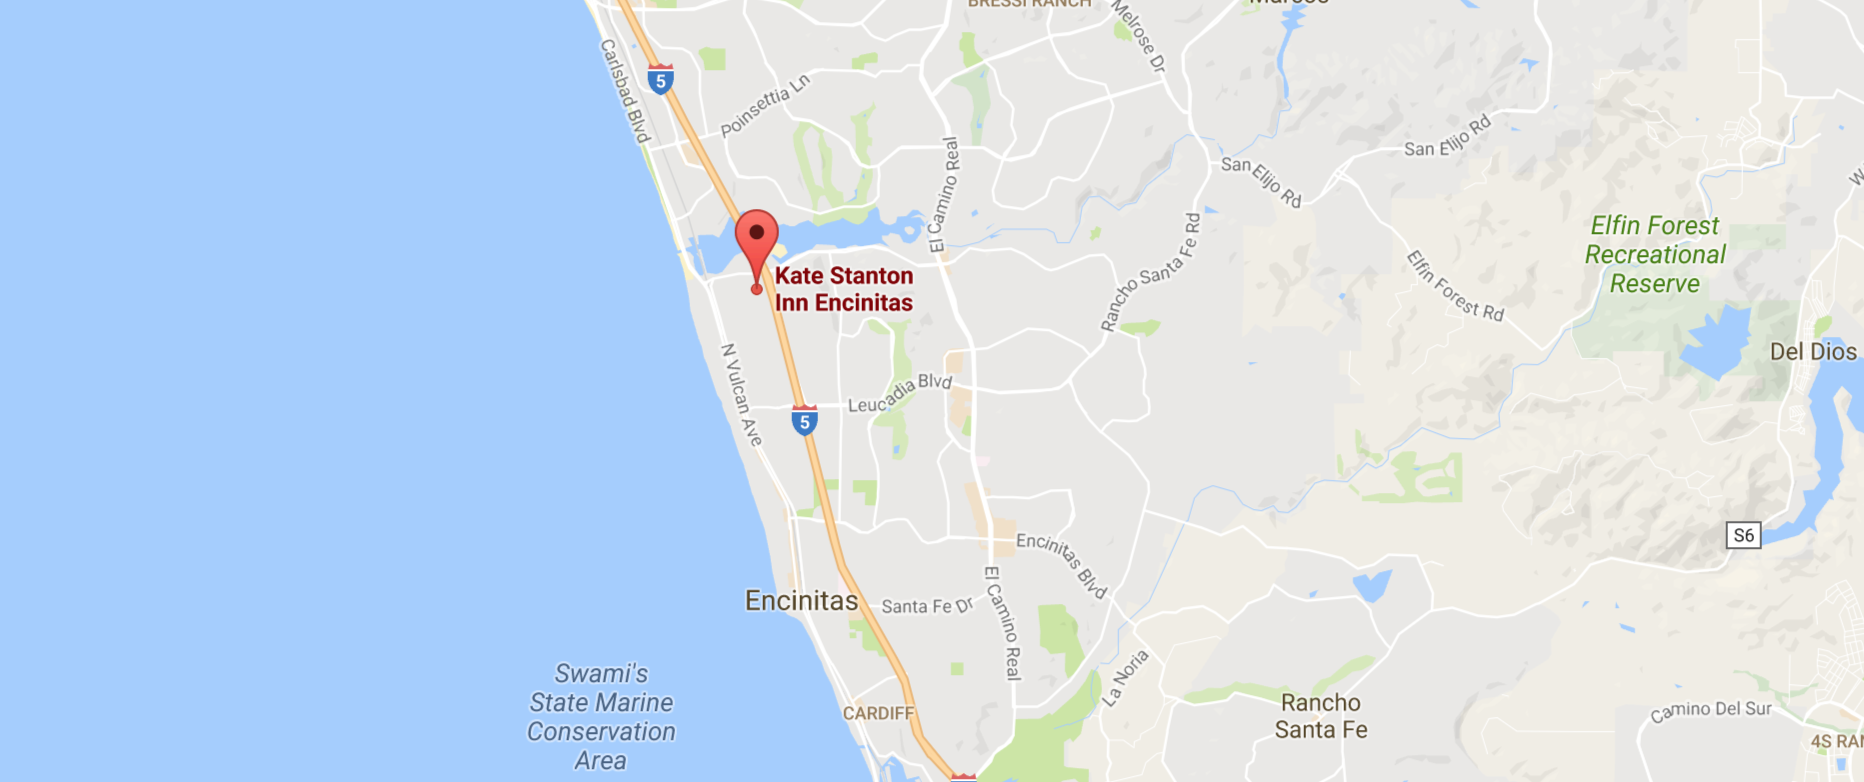 Map - Kate Stanton Bed and Breakfast, San Diego Area